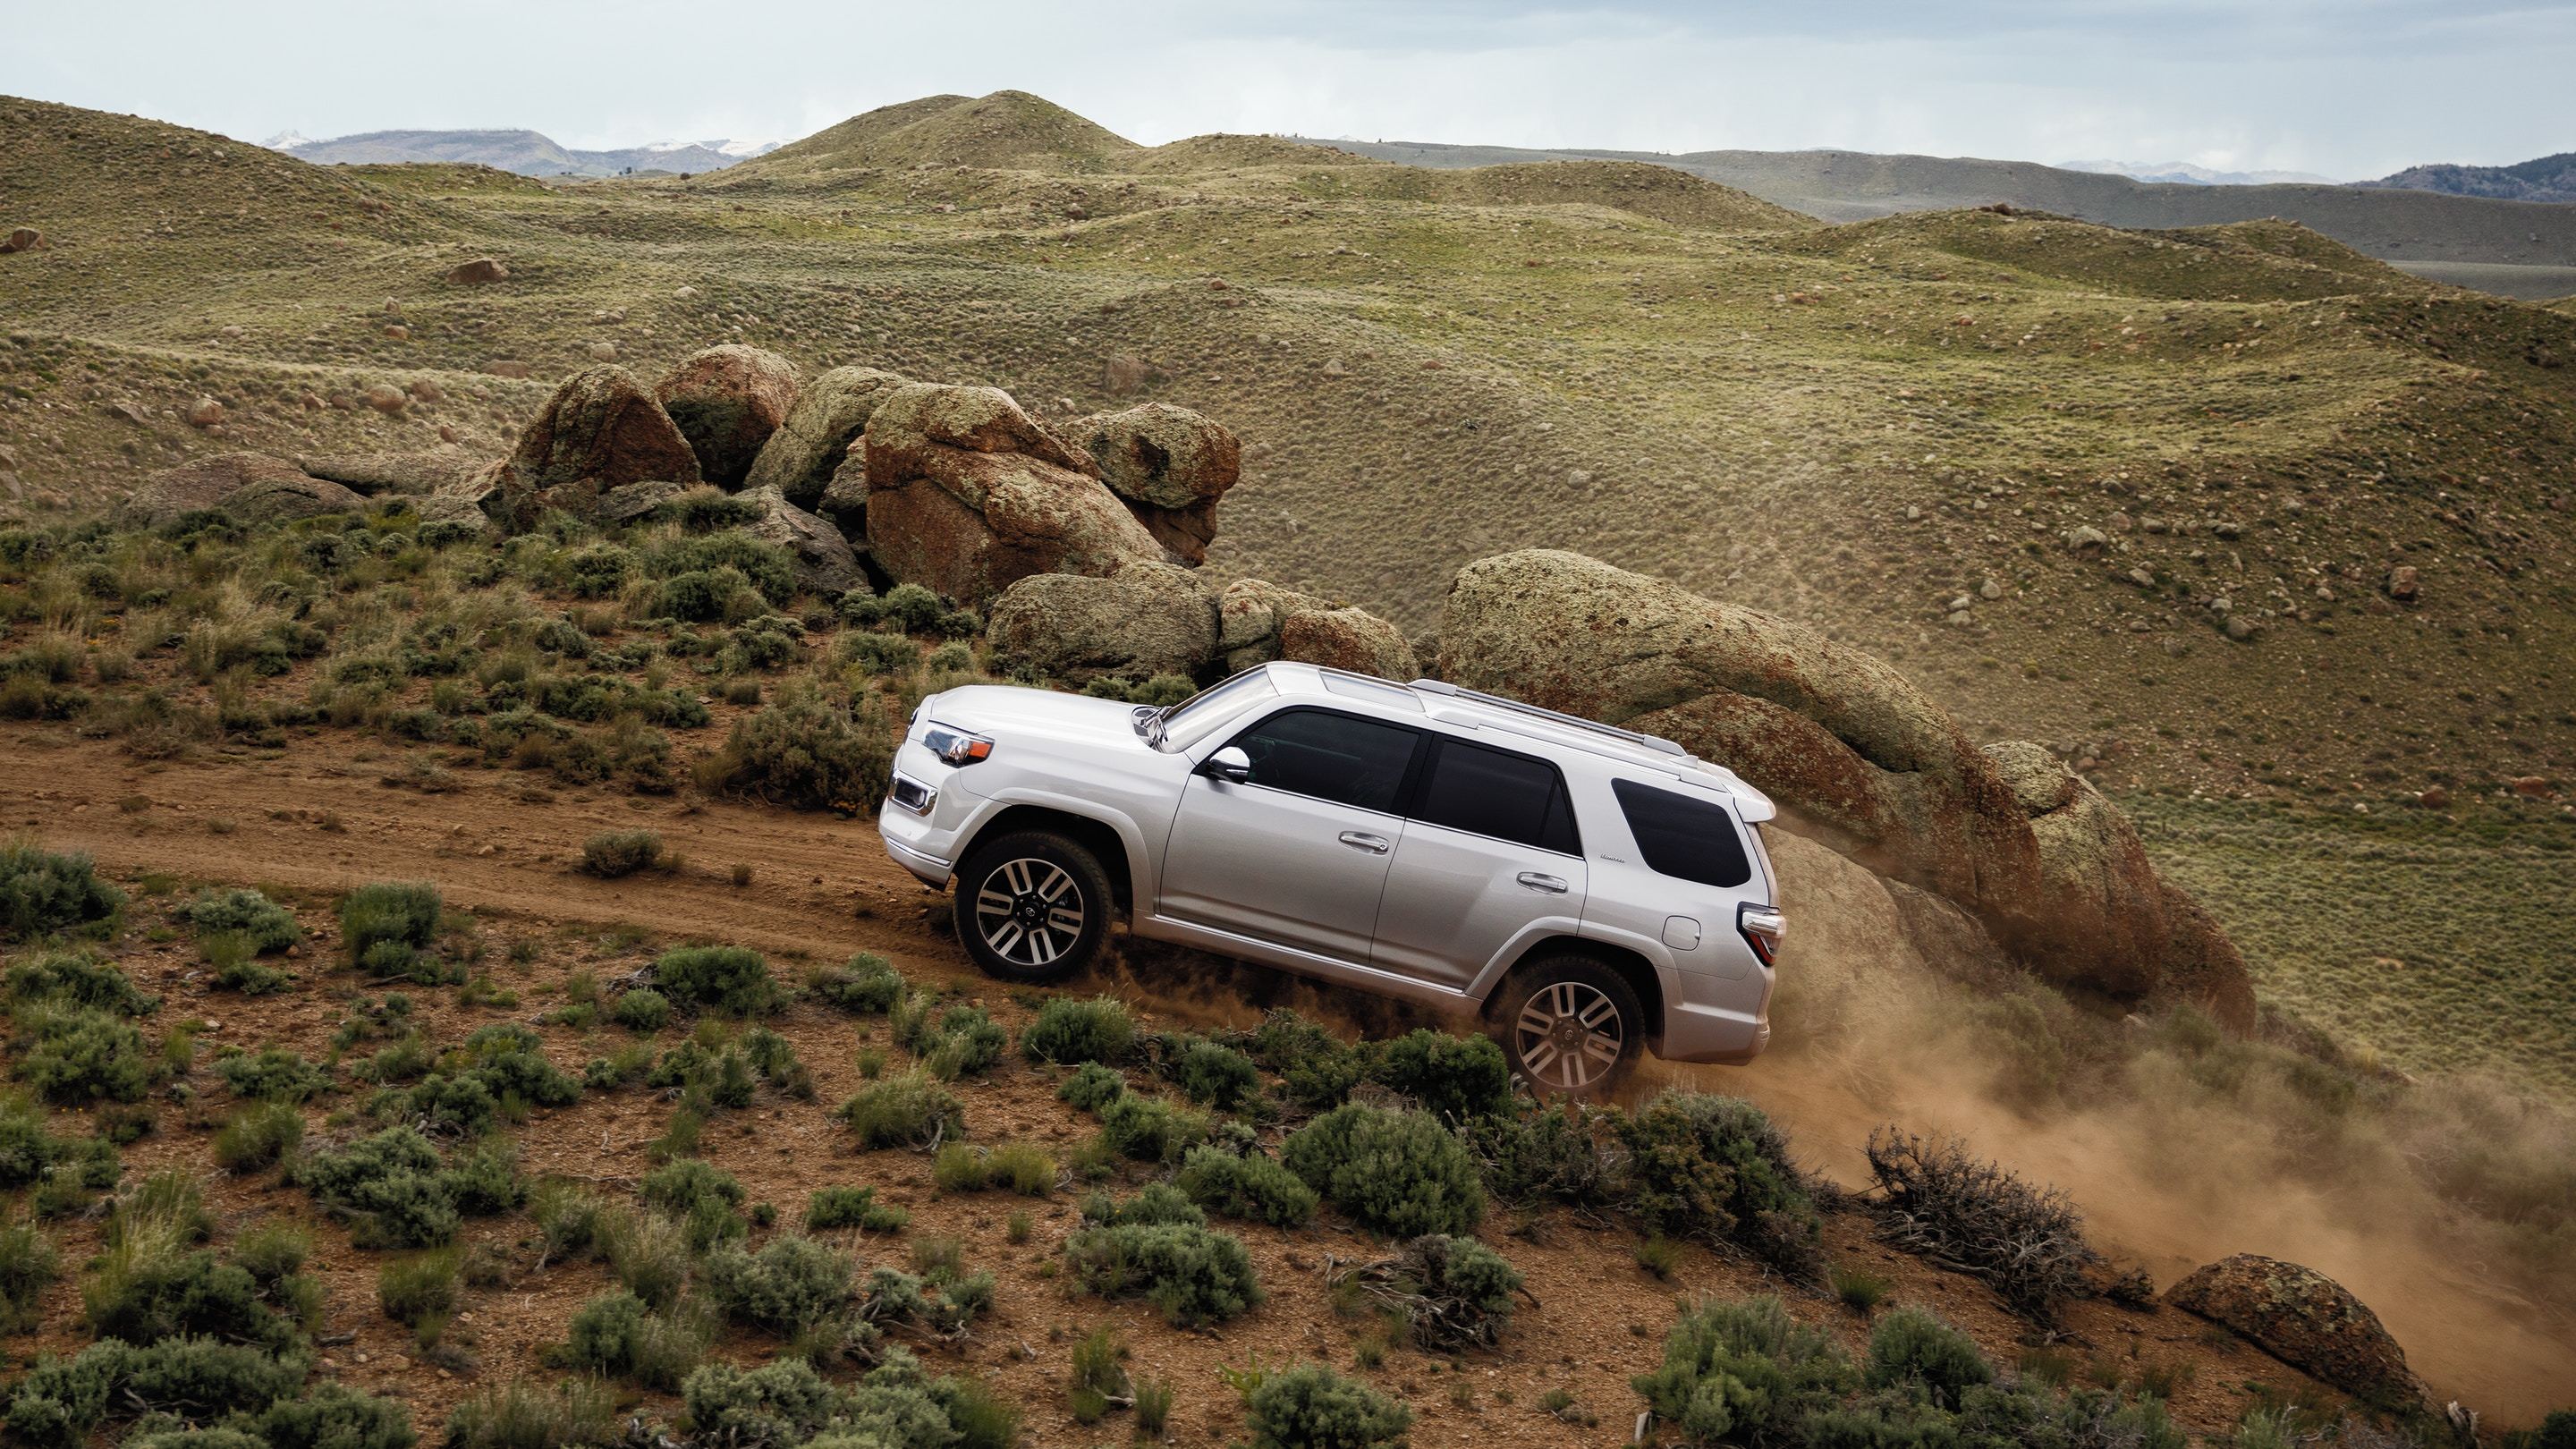 2020 Toyota 4Runner Lease in Kansas City, MO, 64114